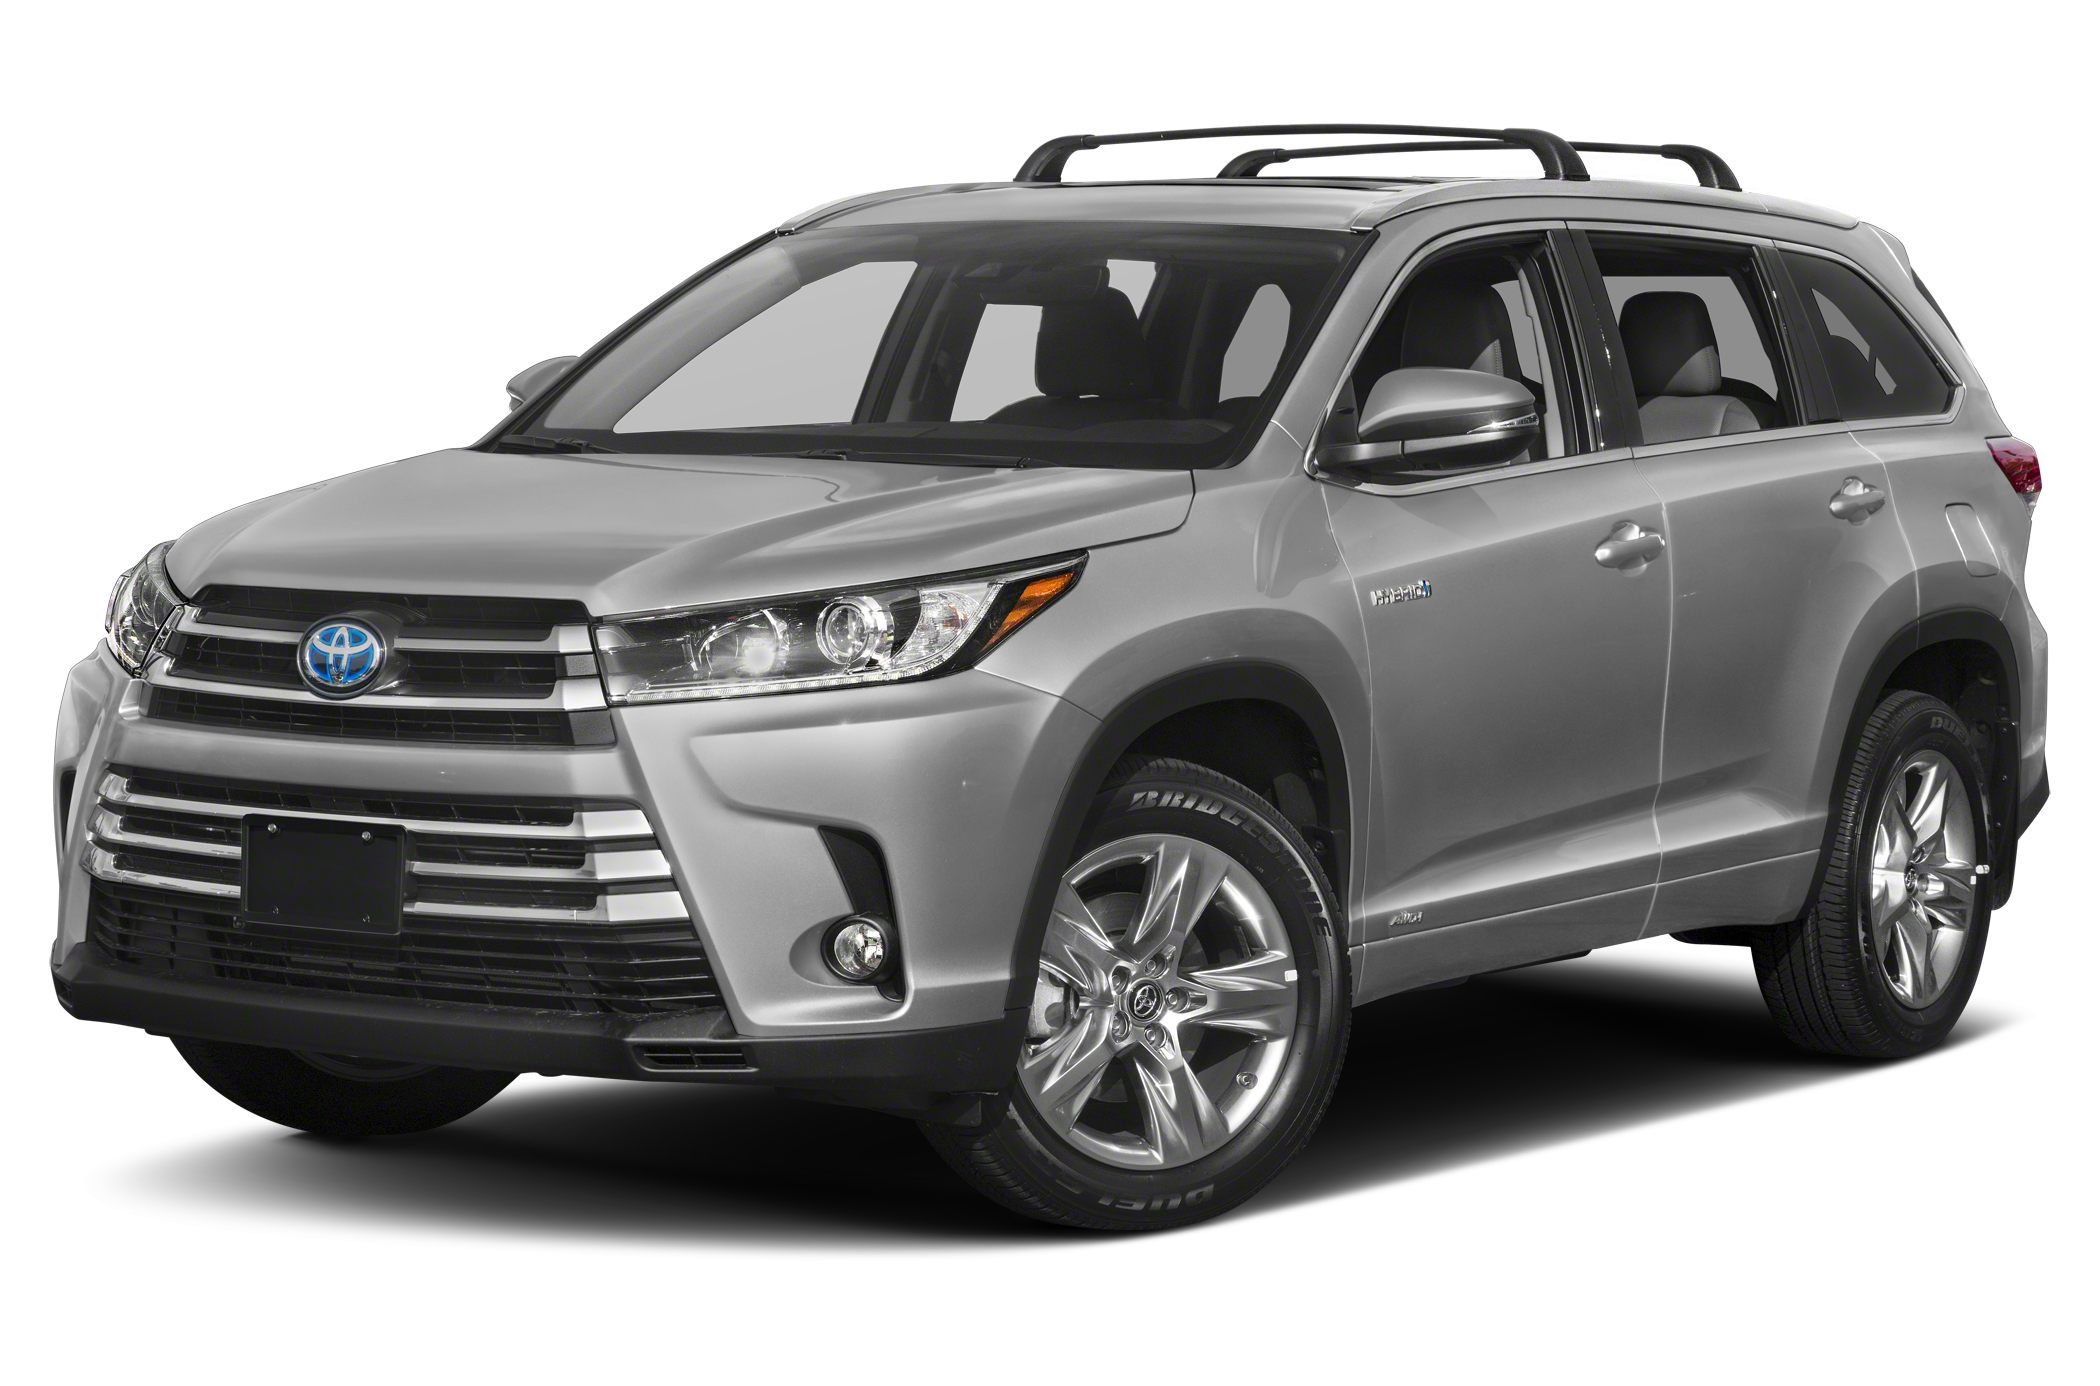 toyota and lexus recalling 235 000 hybrid cuvs and sedans over separate issues autoblog. Black Bedroom Furniture Sets. Home Design Ideas